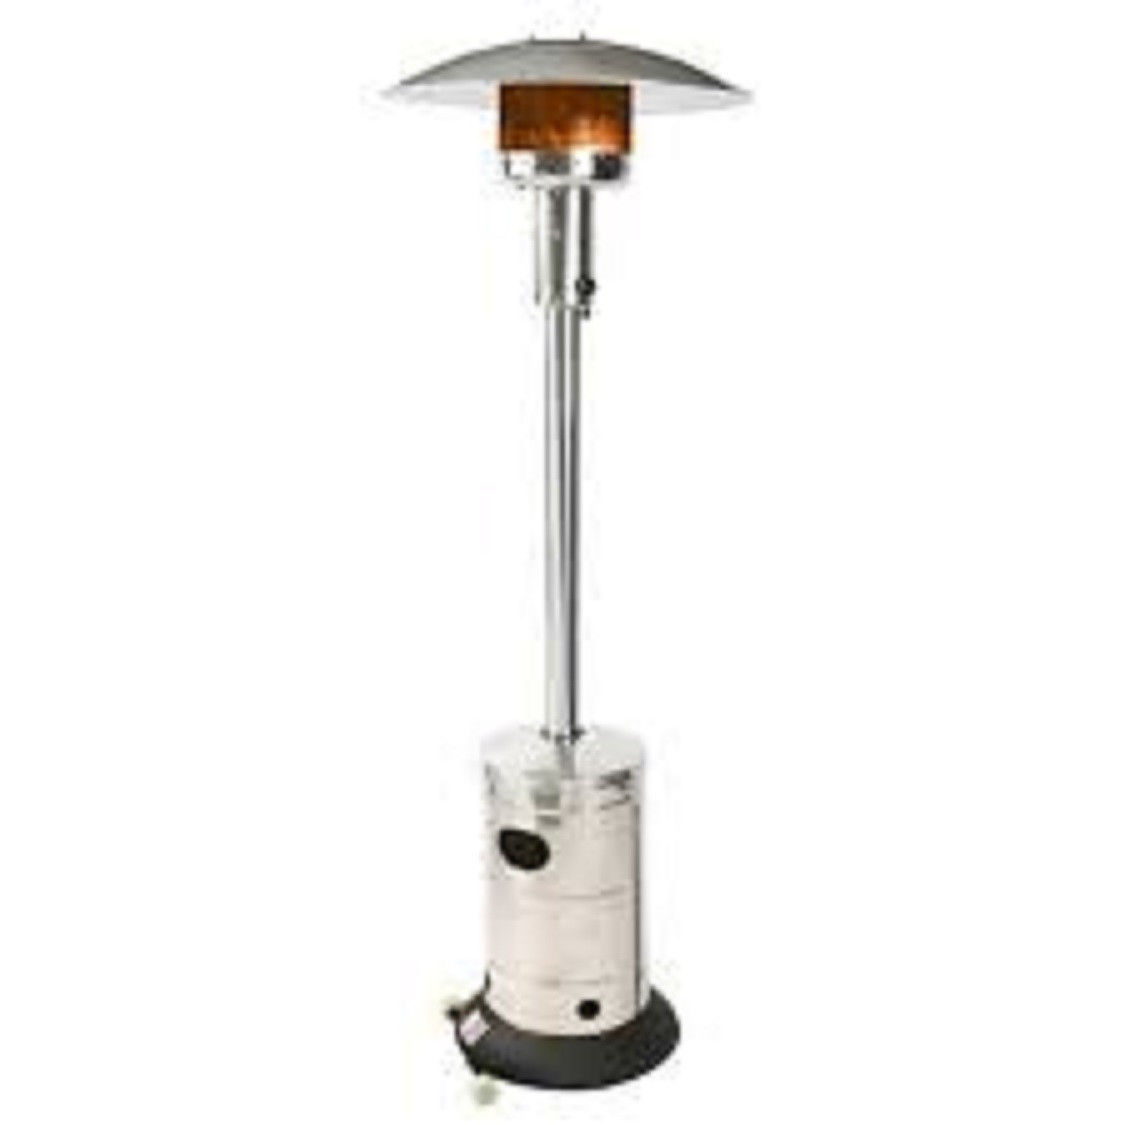 Patio Heater Outdoor Floor Standing Propane Space Living